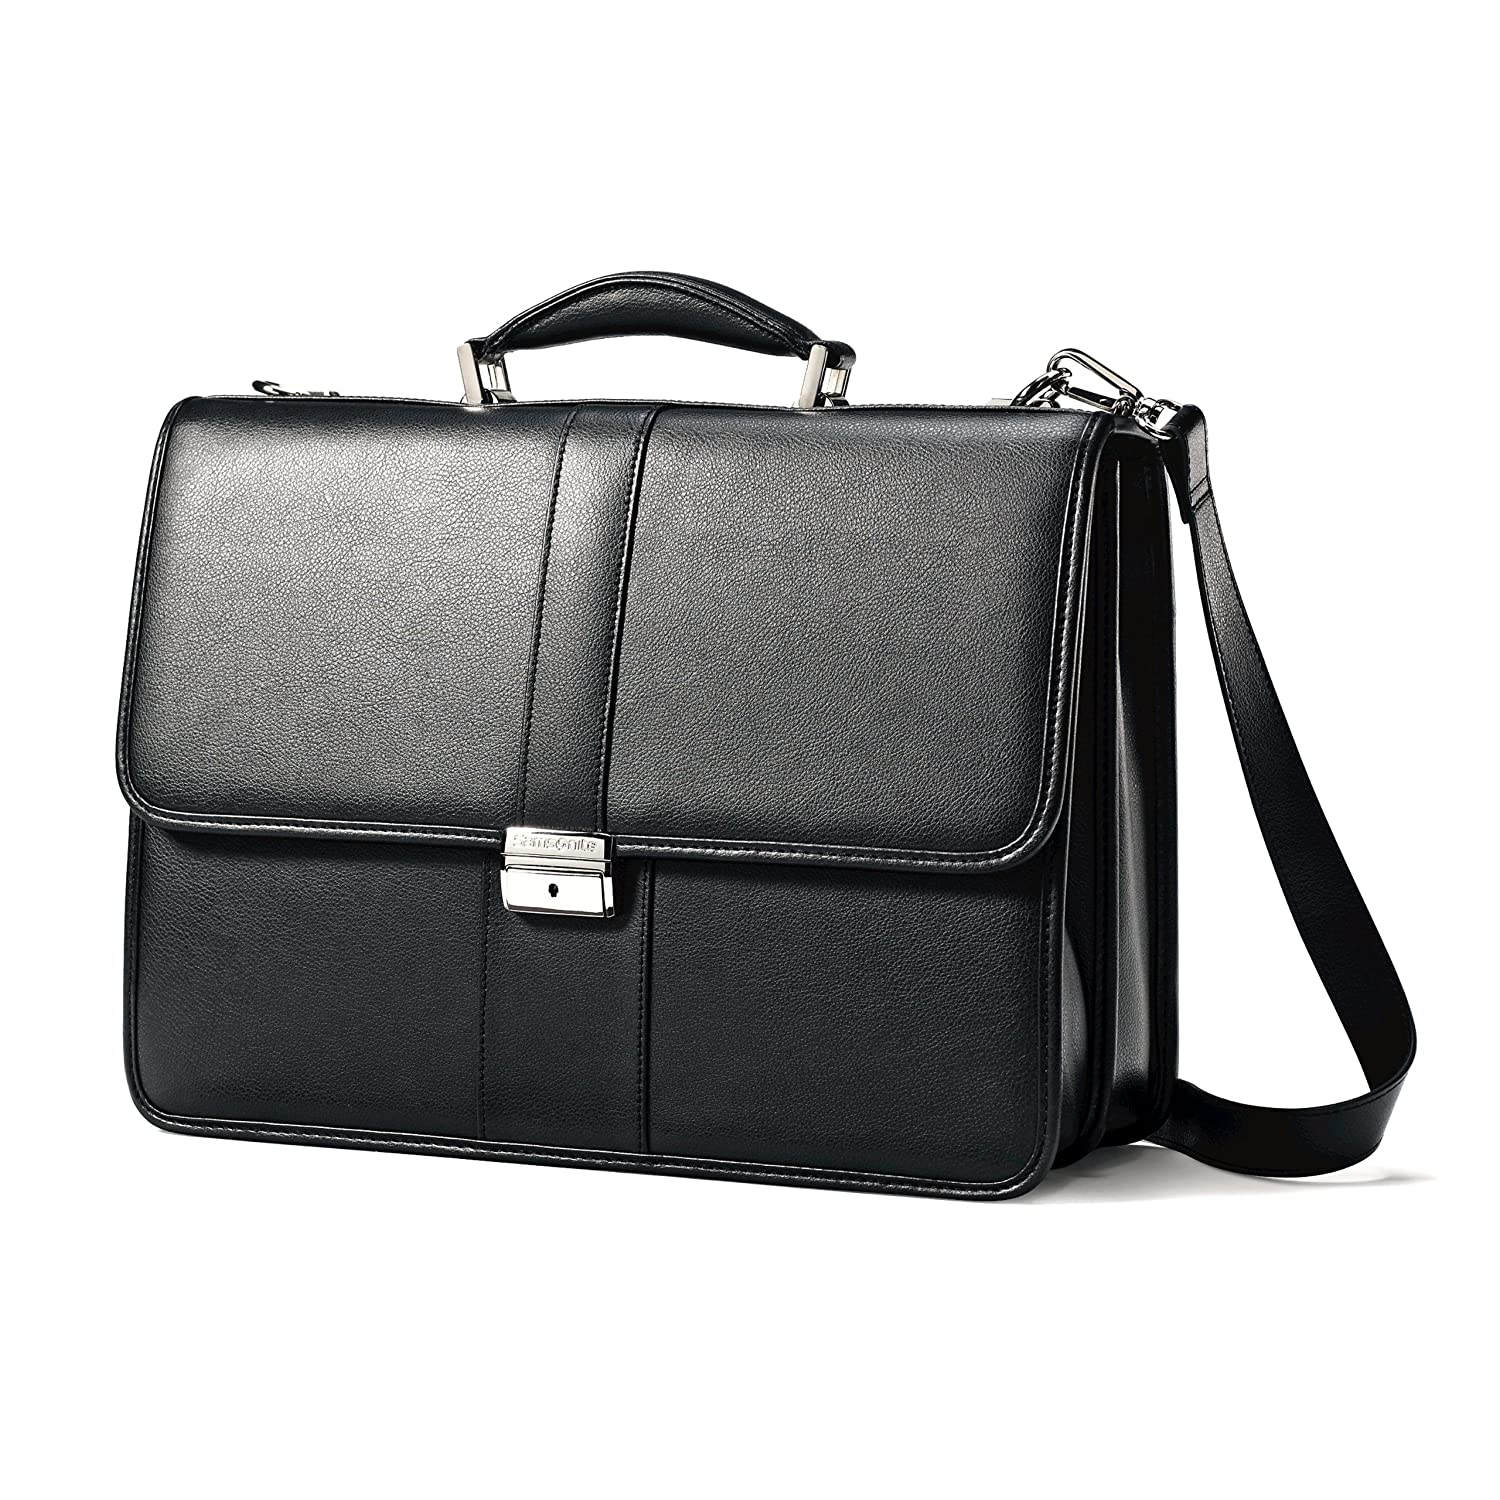 Samsonite Leather Flapover Case, Black